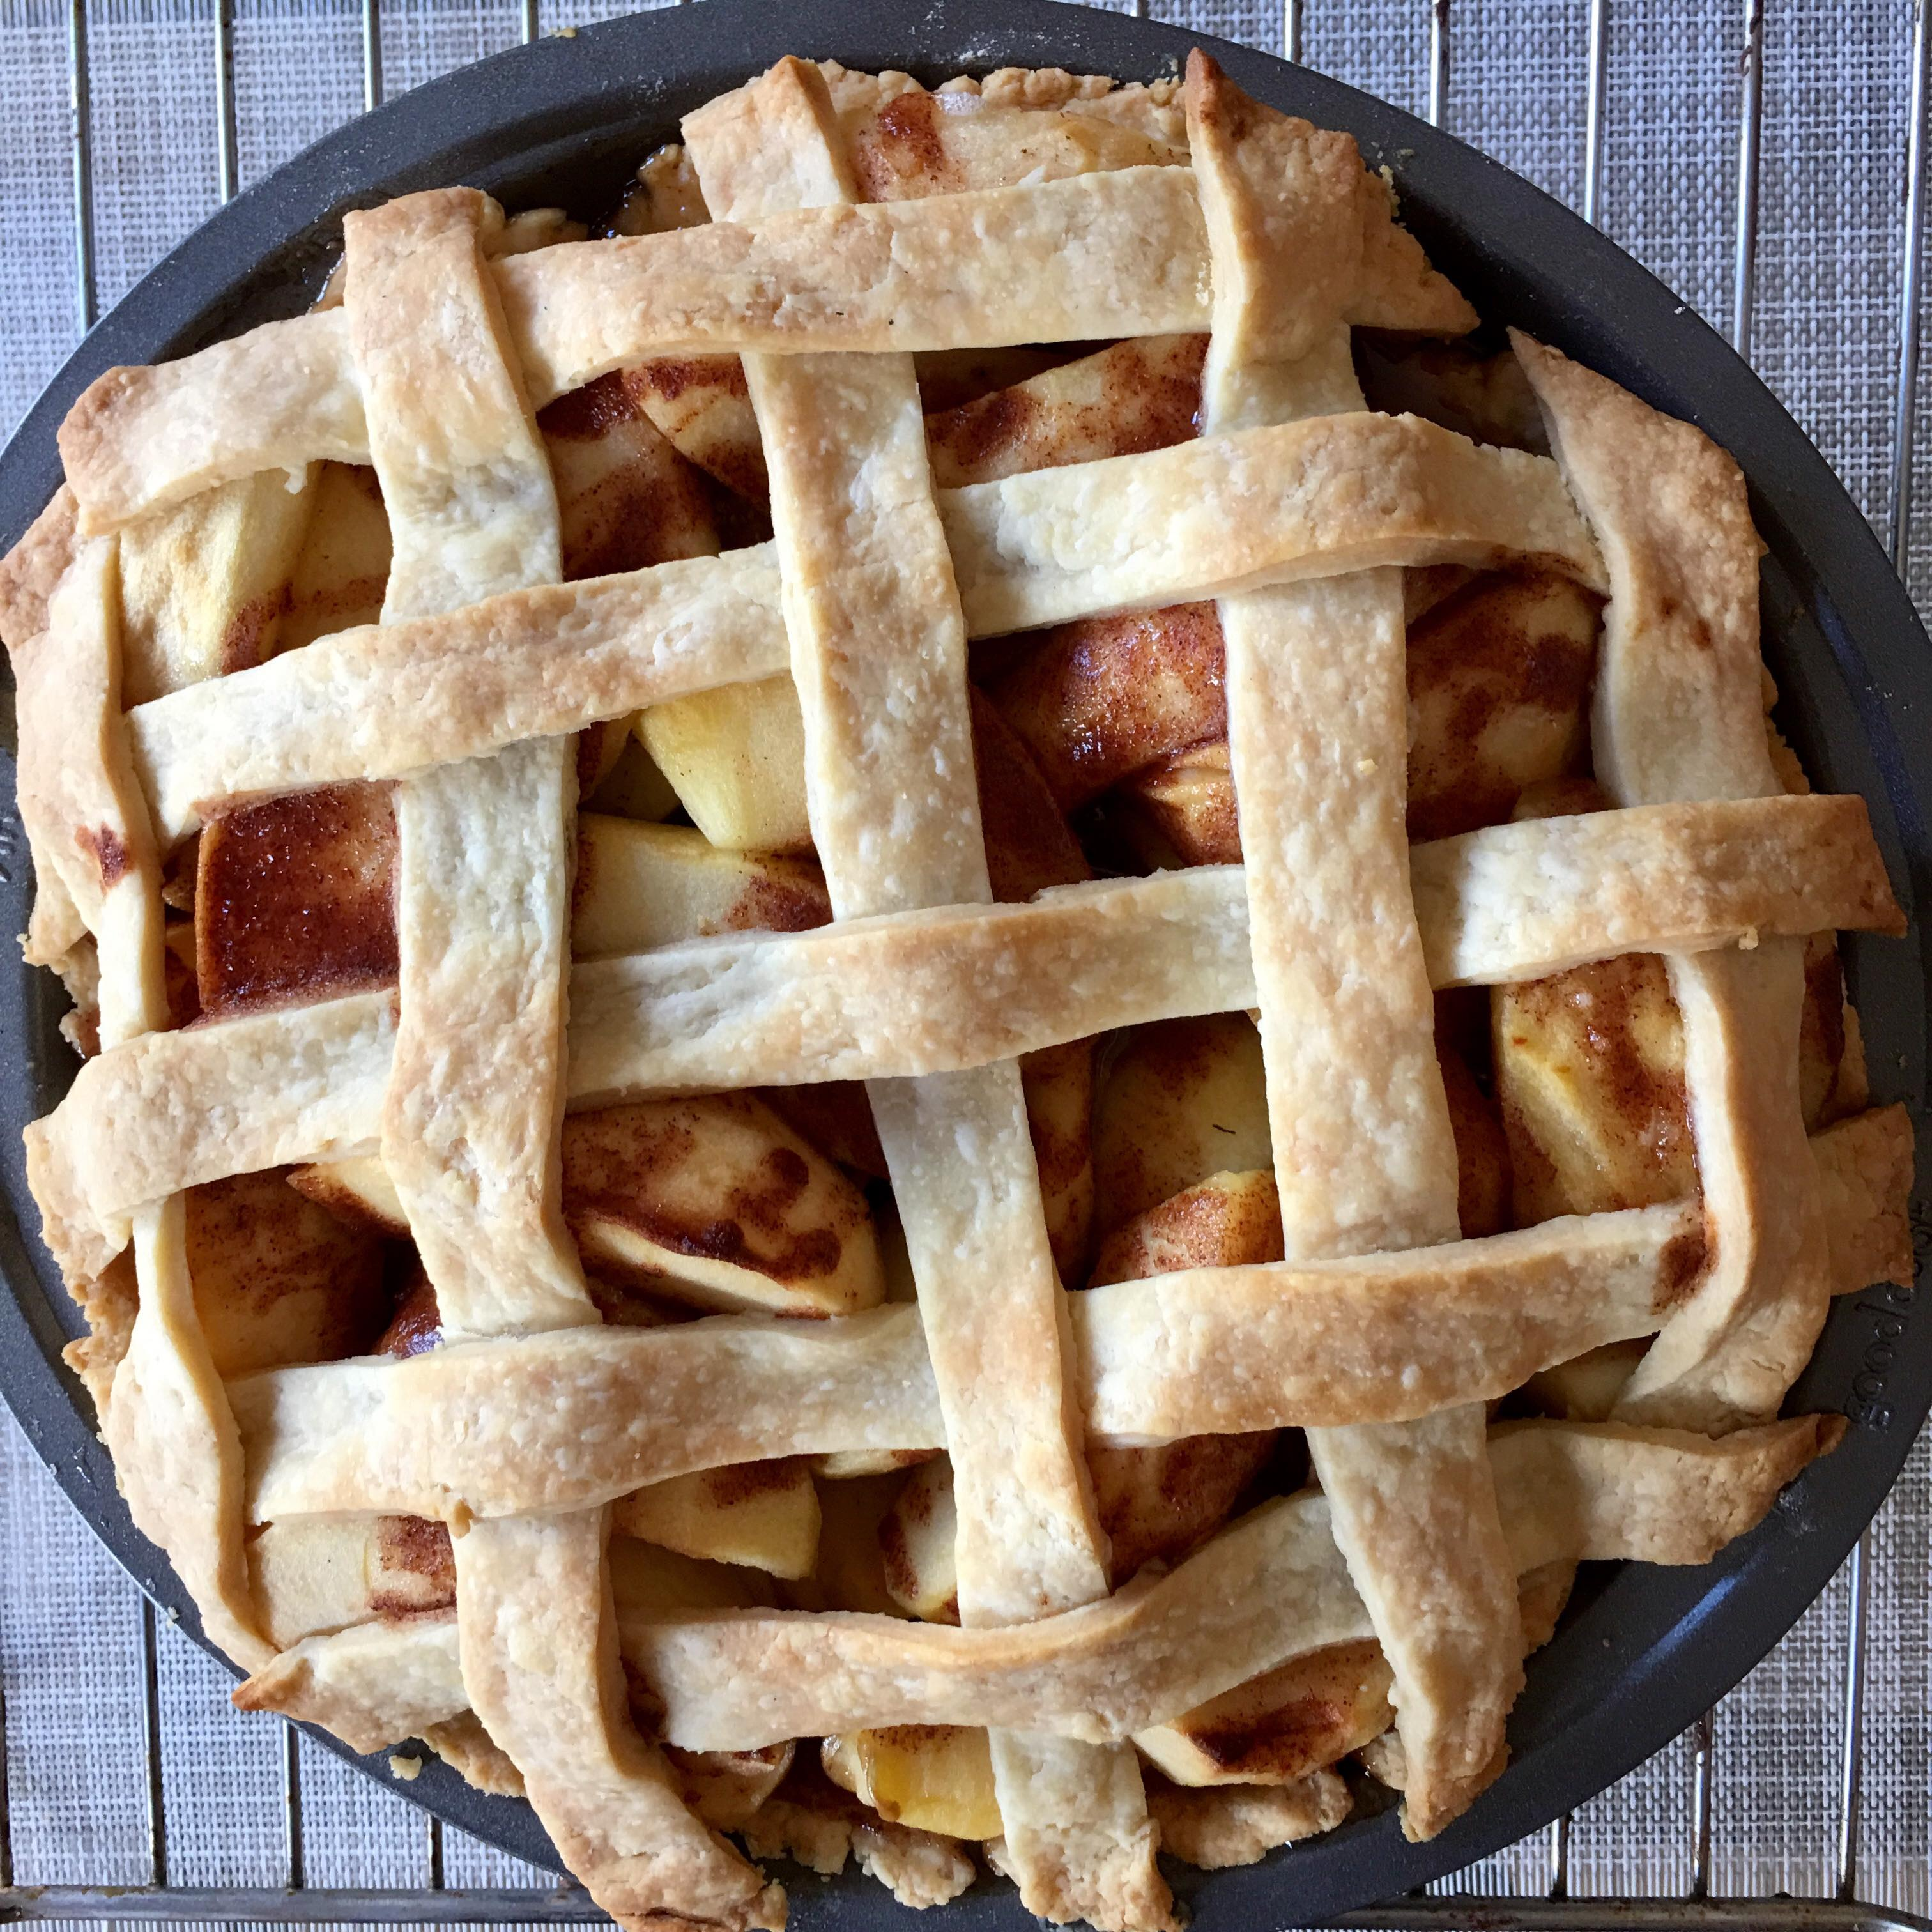 Apple pie on cooling rack